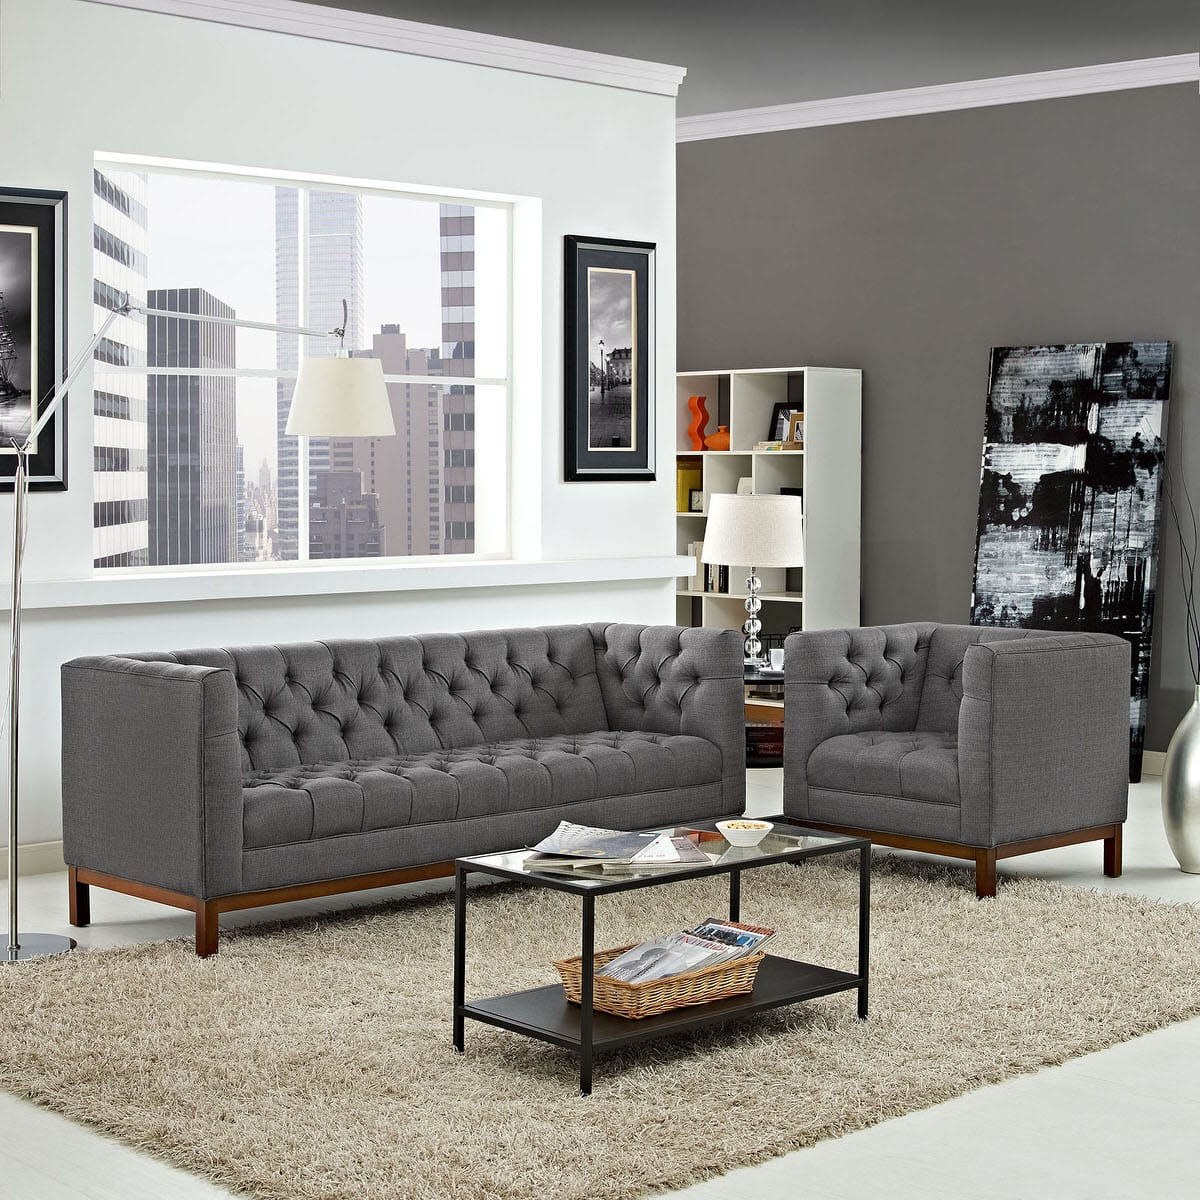 Panache Living Room Set Upholstered Fabric Set of 2 Gray by Modern Living